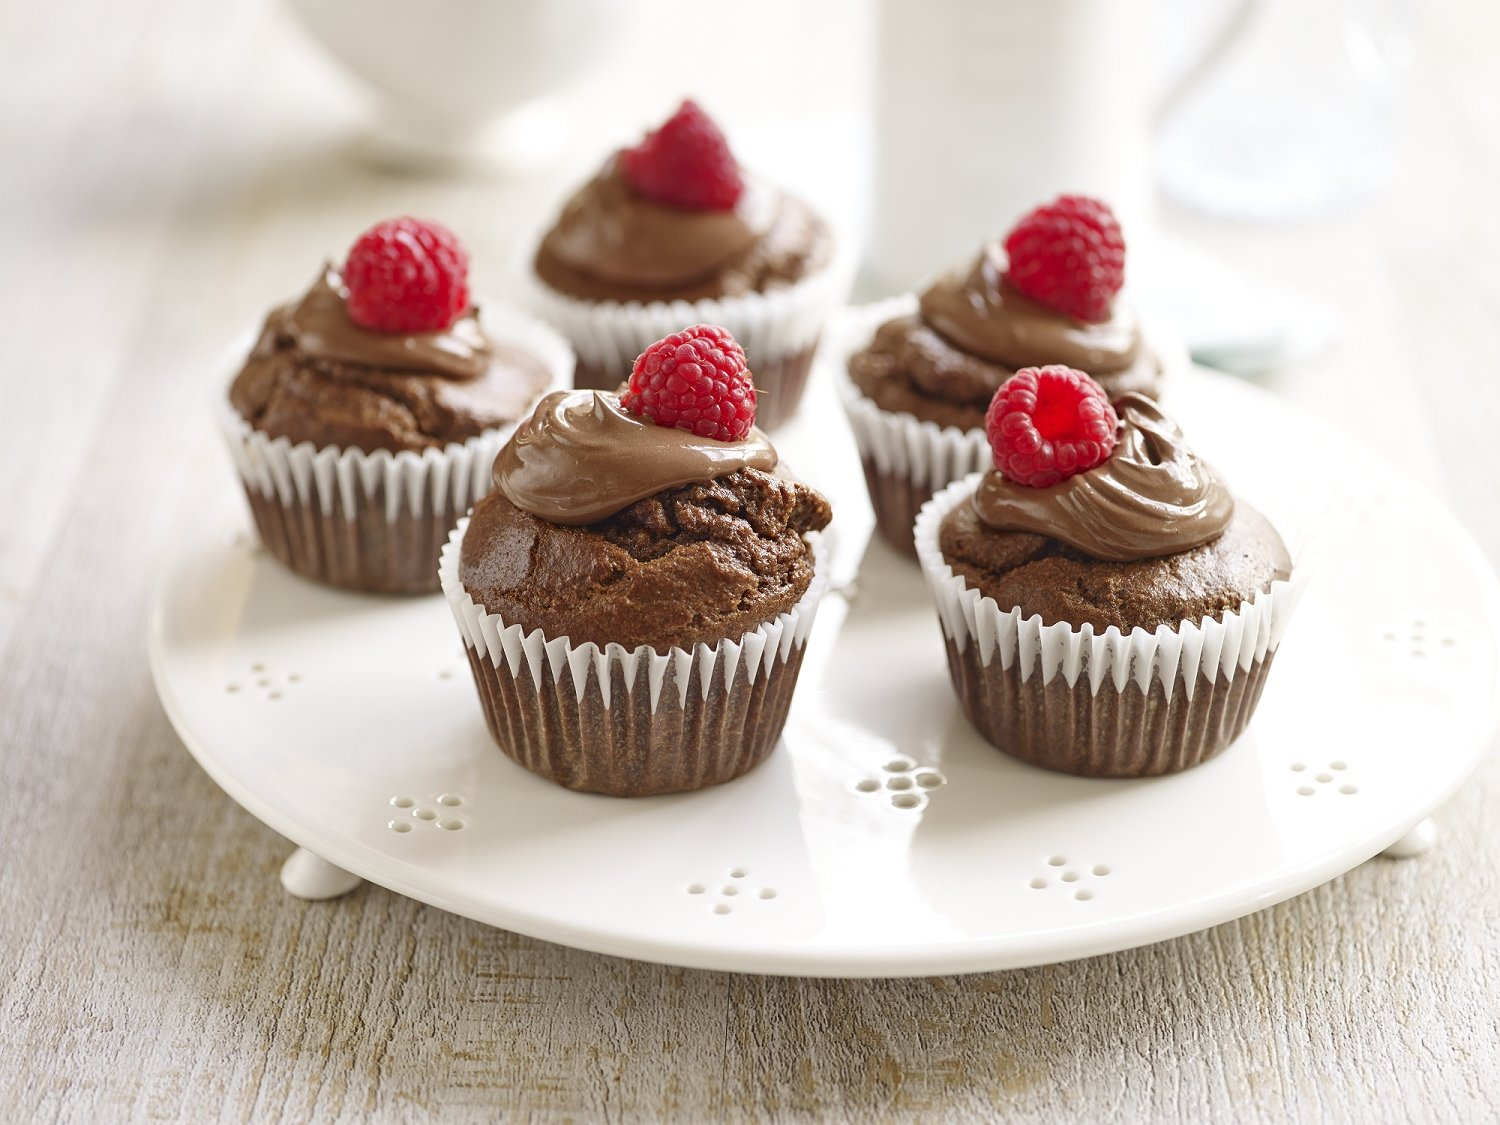 Recipe: (Heavenly) Gluten Free Chocolate Cupcakes